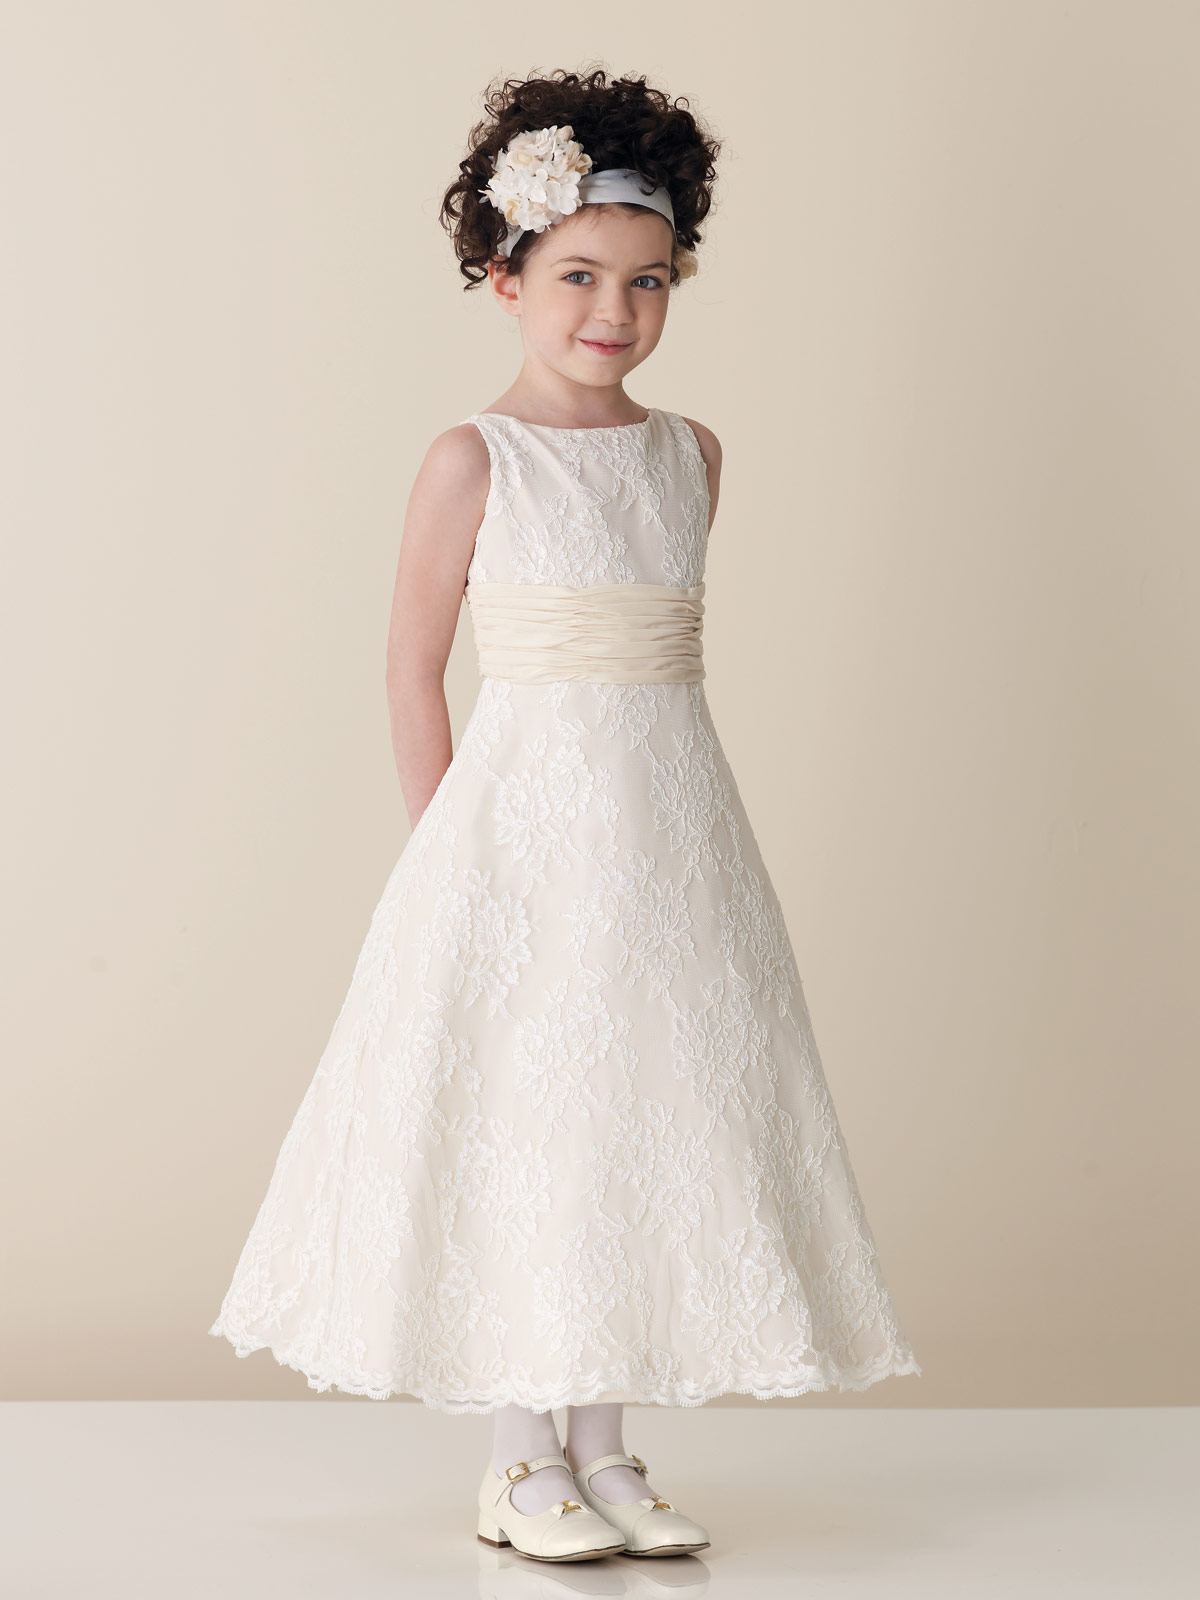 Free wedding kids wedding dresses for Girls dresses for a wedding